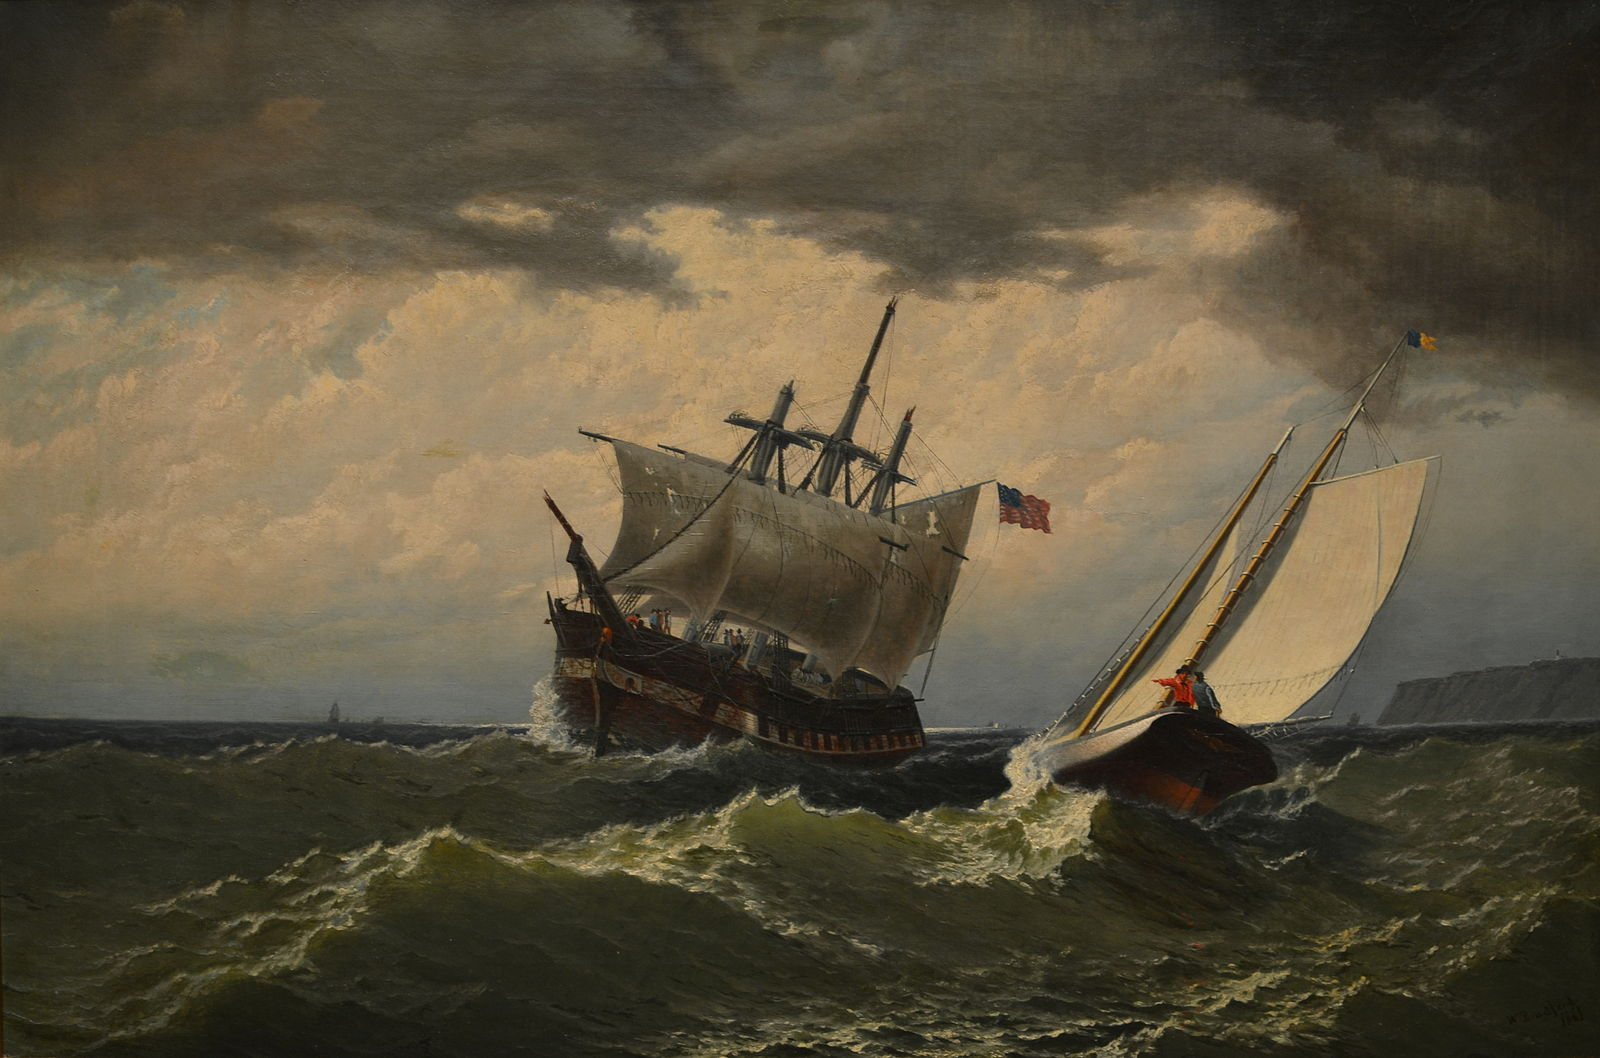 After the Storm by William Bradford: Two sailing ships in a stormy sea